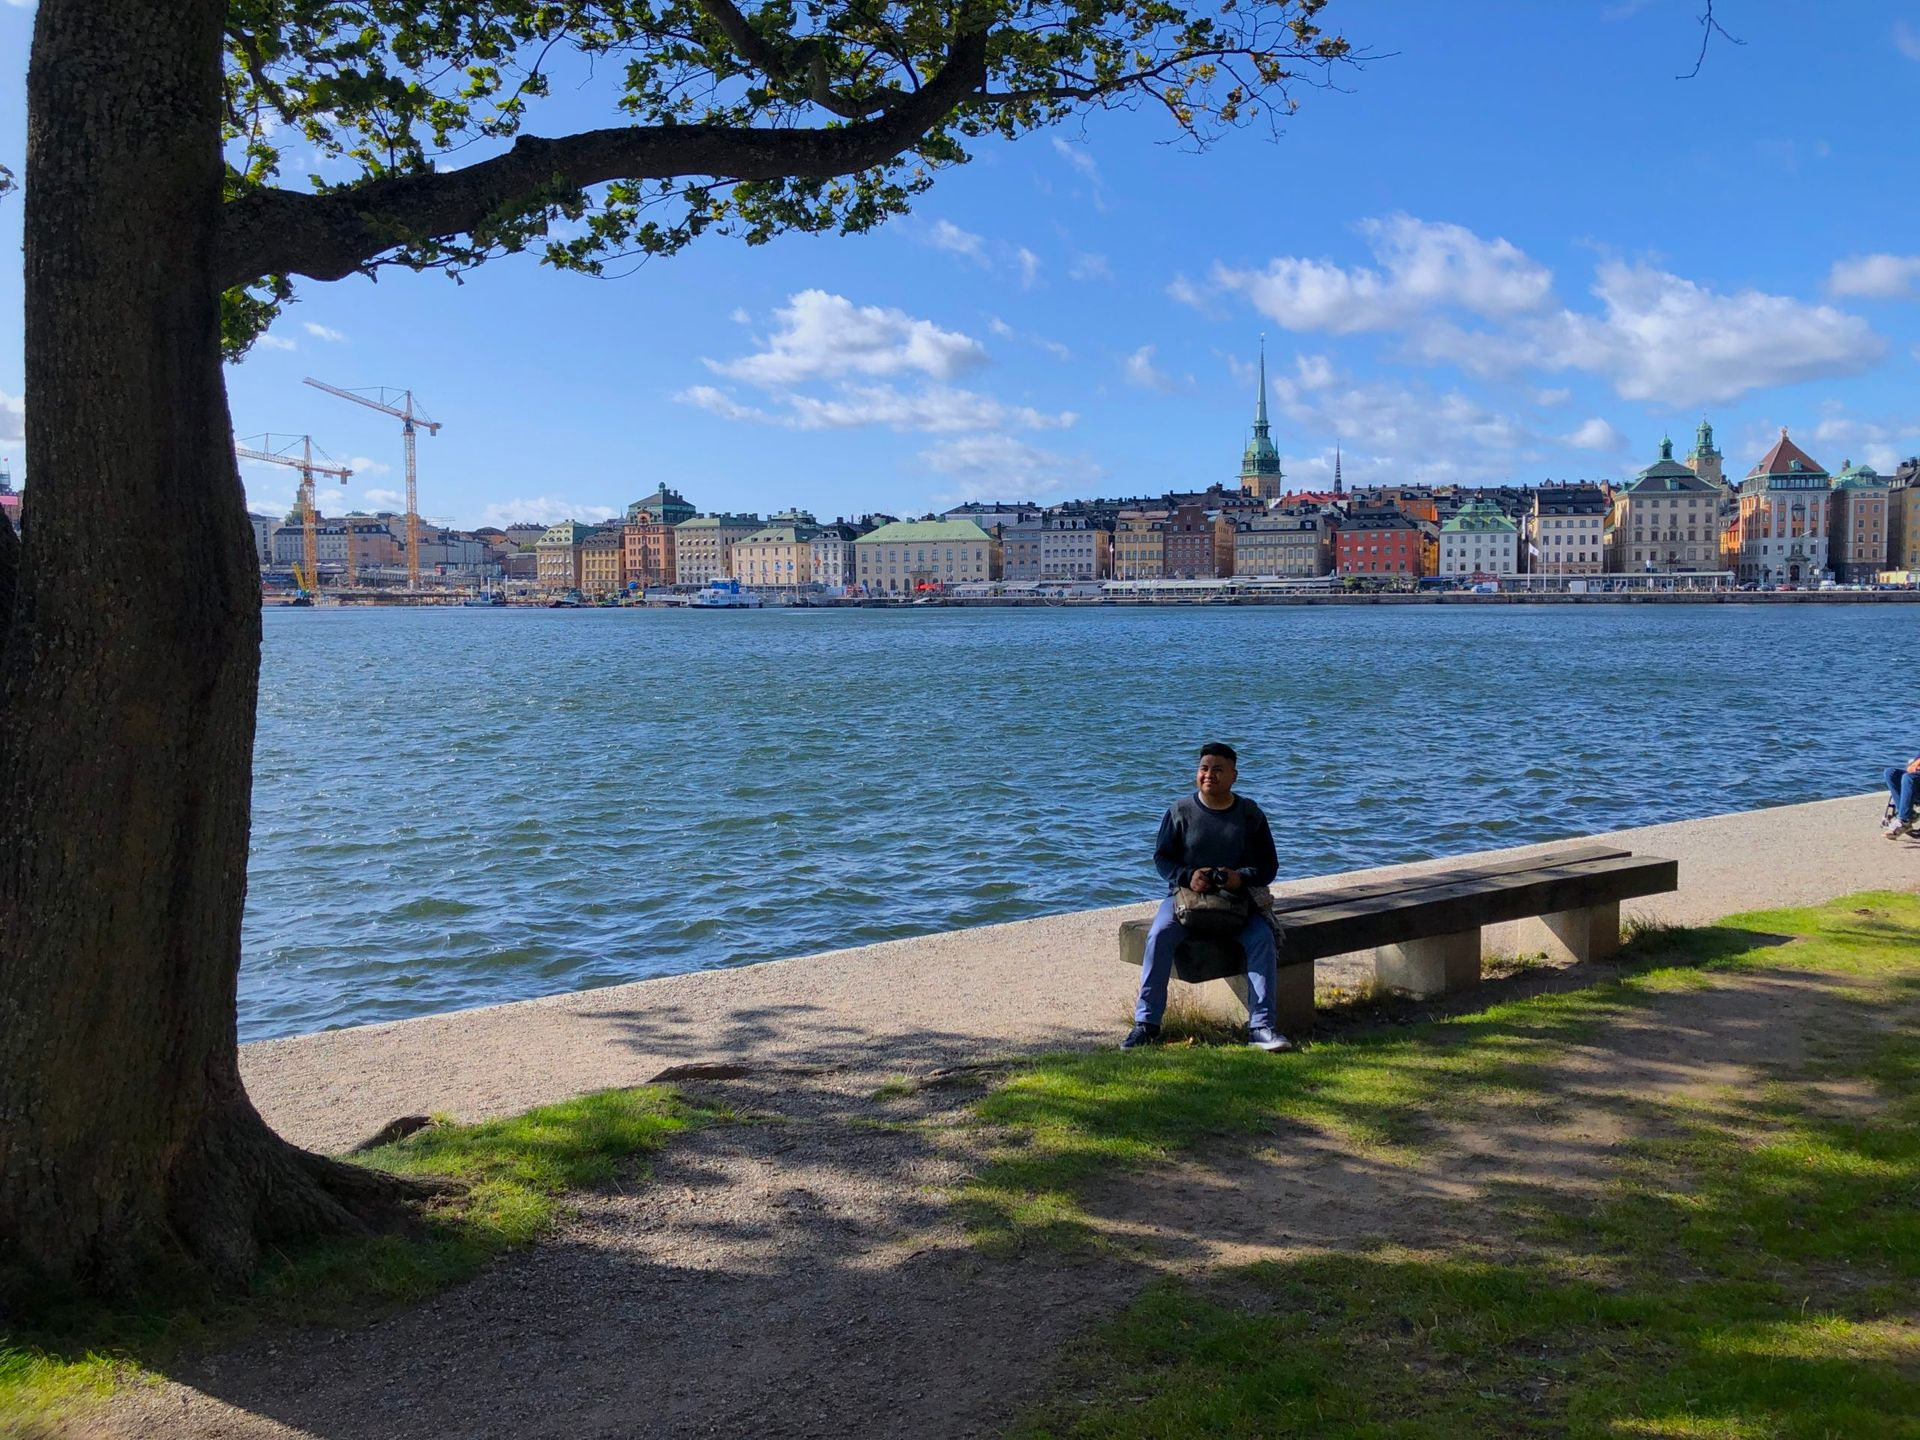 Camilo sits on a park bench under a tree, looking at the view of Stockholm's Old Town.